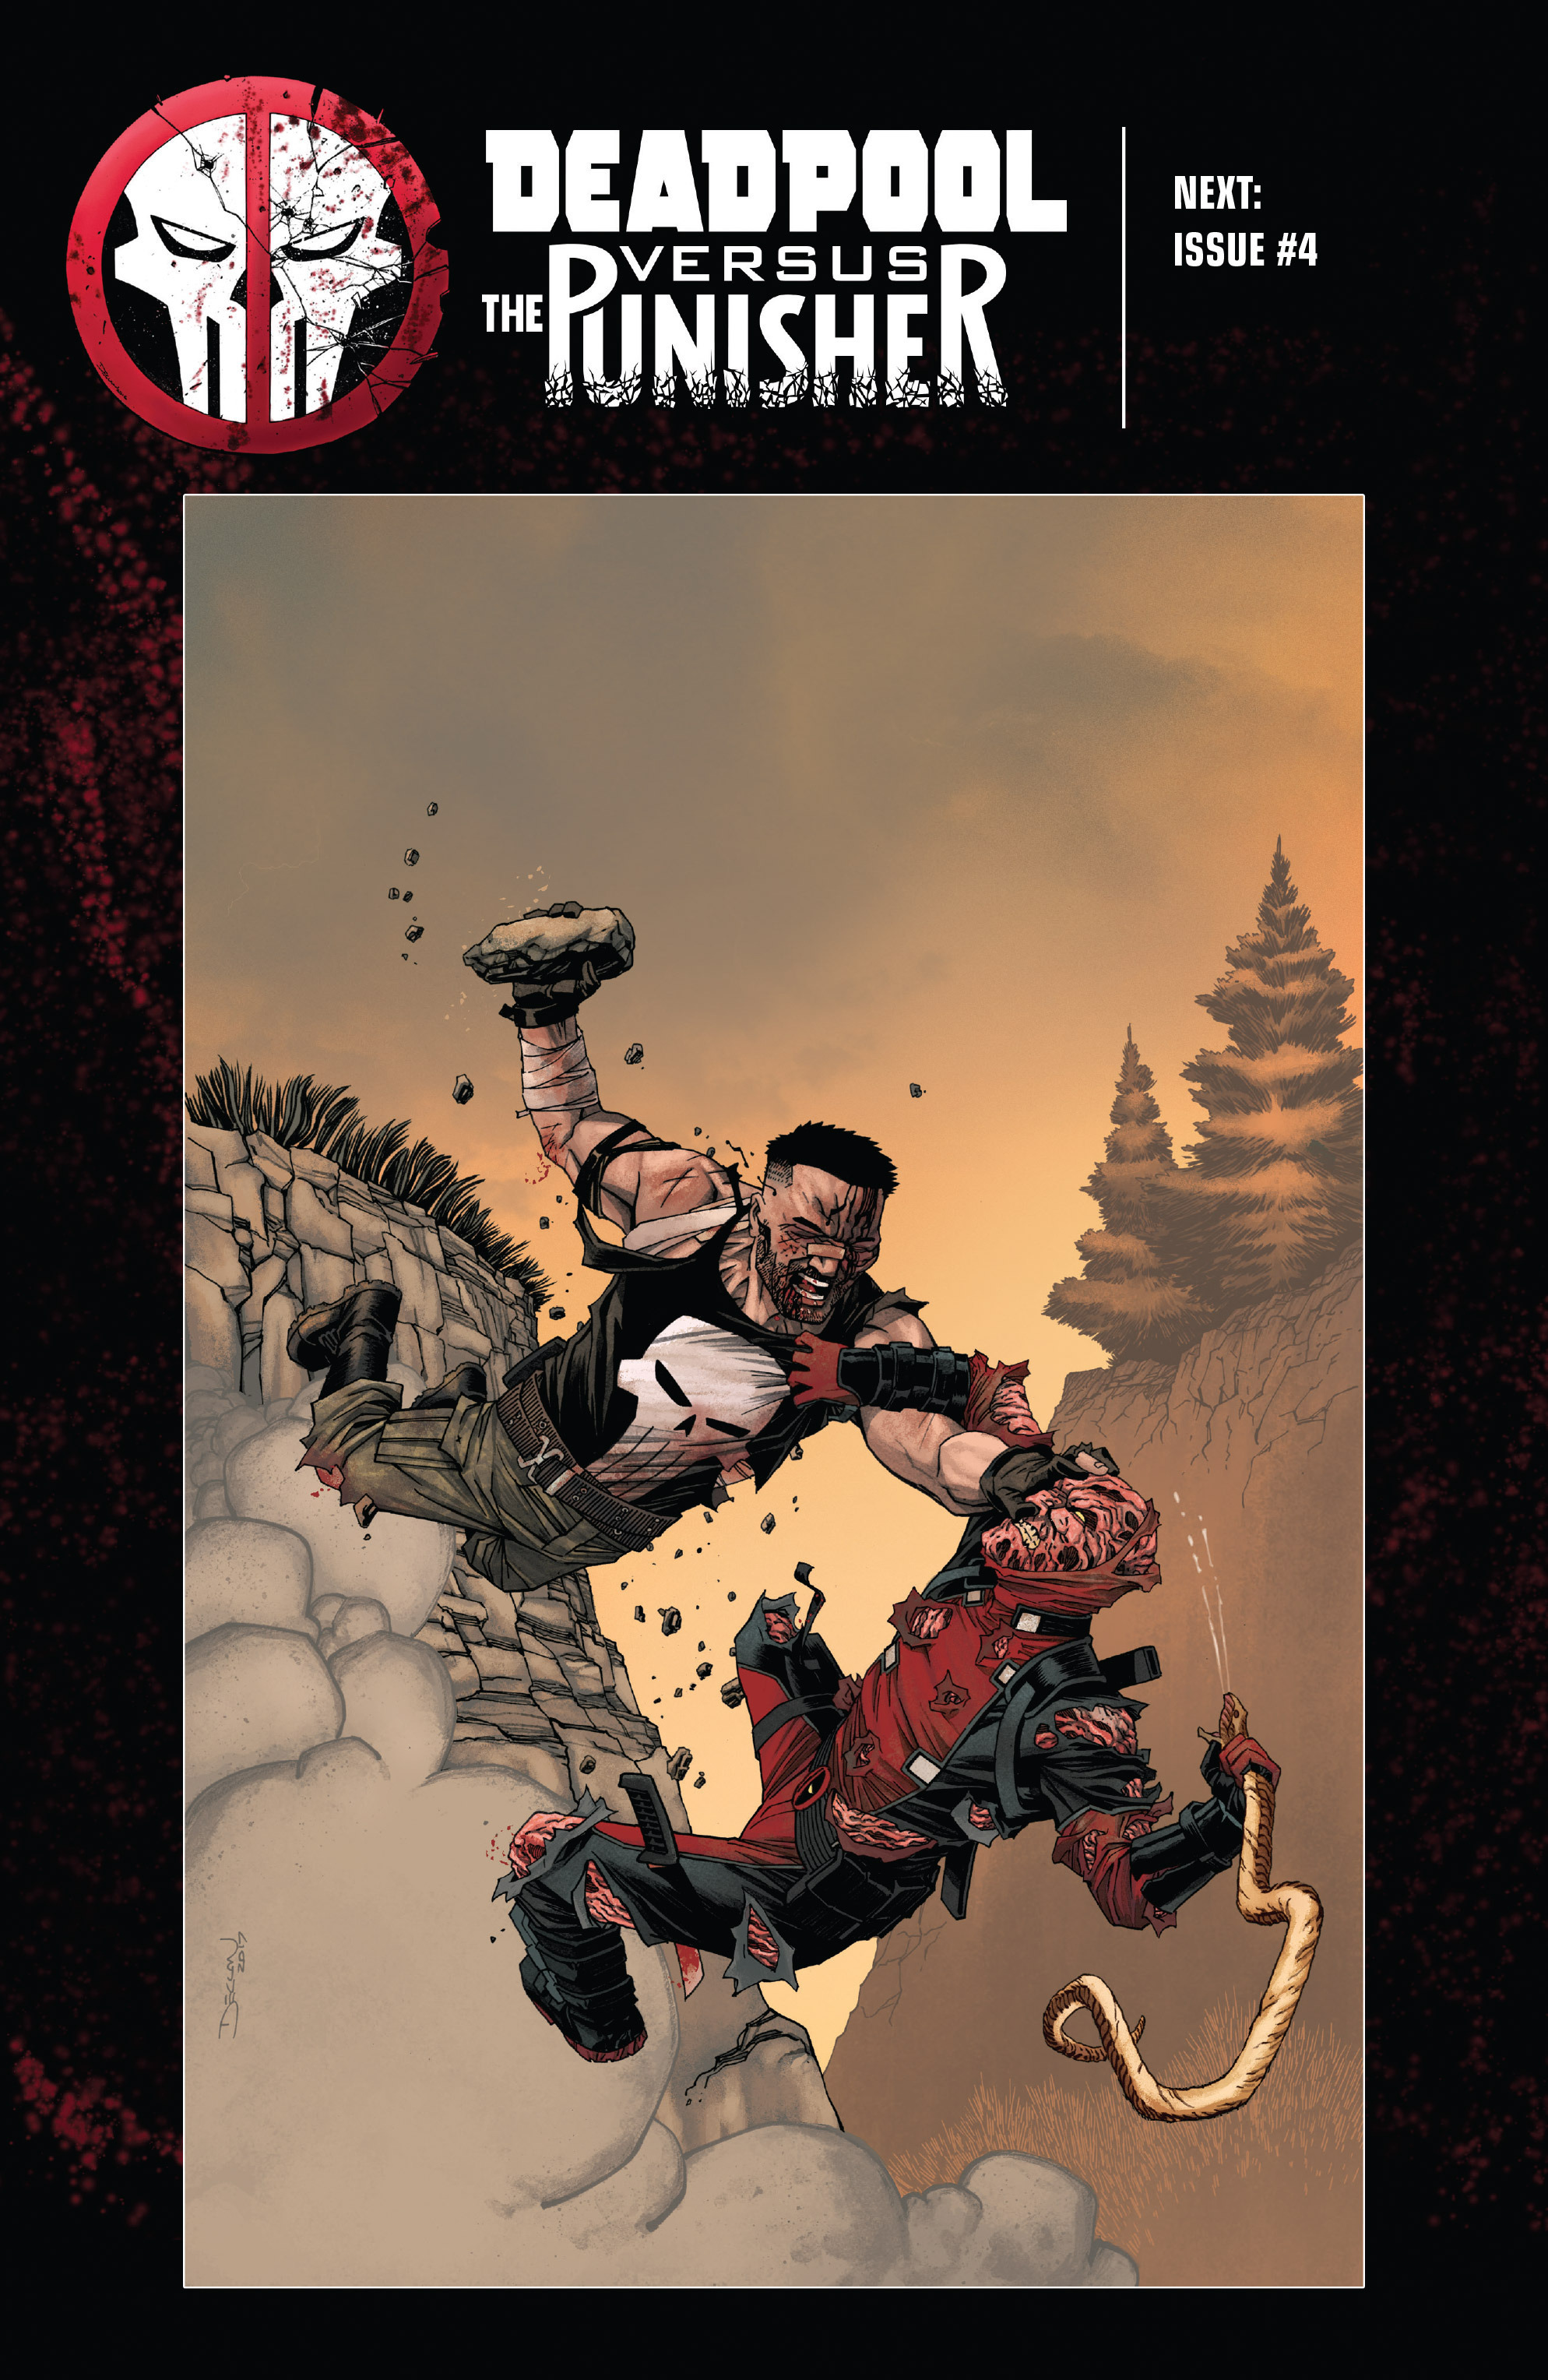 Read online Deadpool vs. The Punisher comic -  Issue #3 - 22